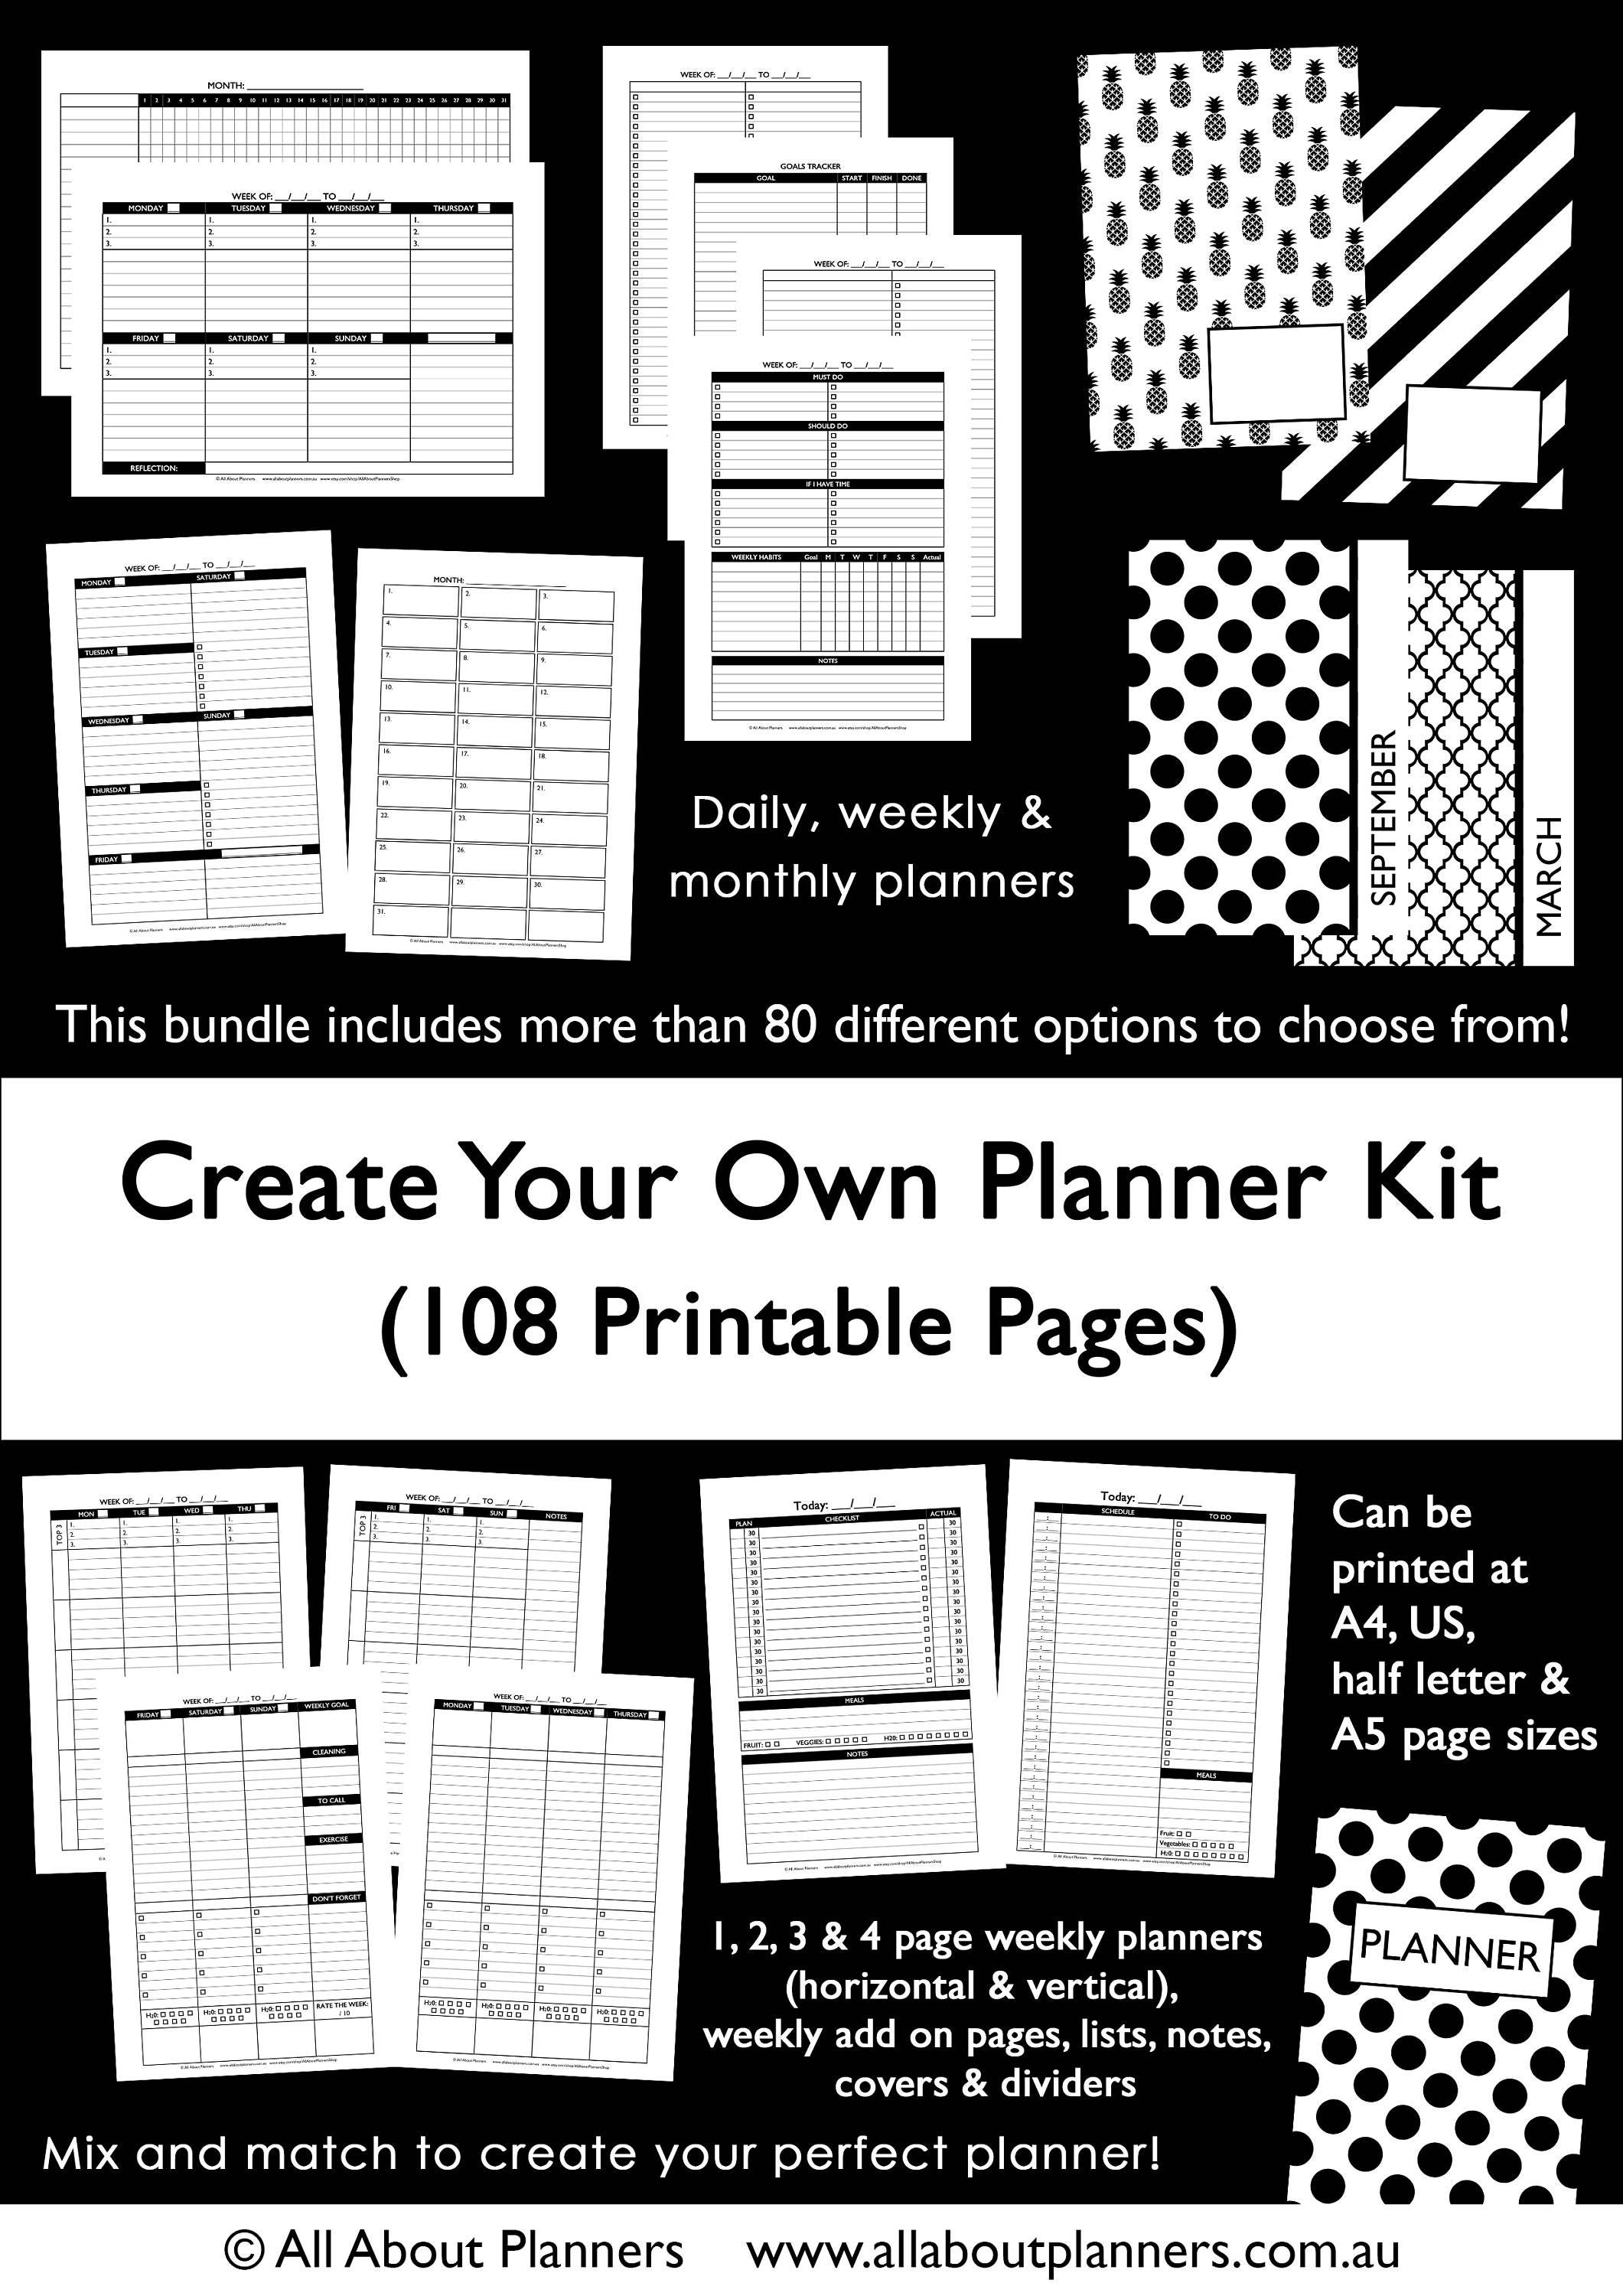 Custom Planner Kit Printable Build Your Own Weekly Daily